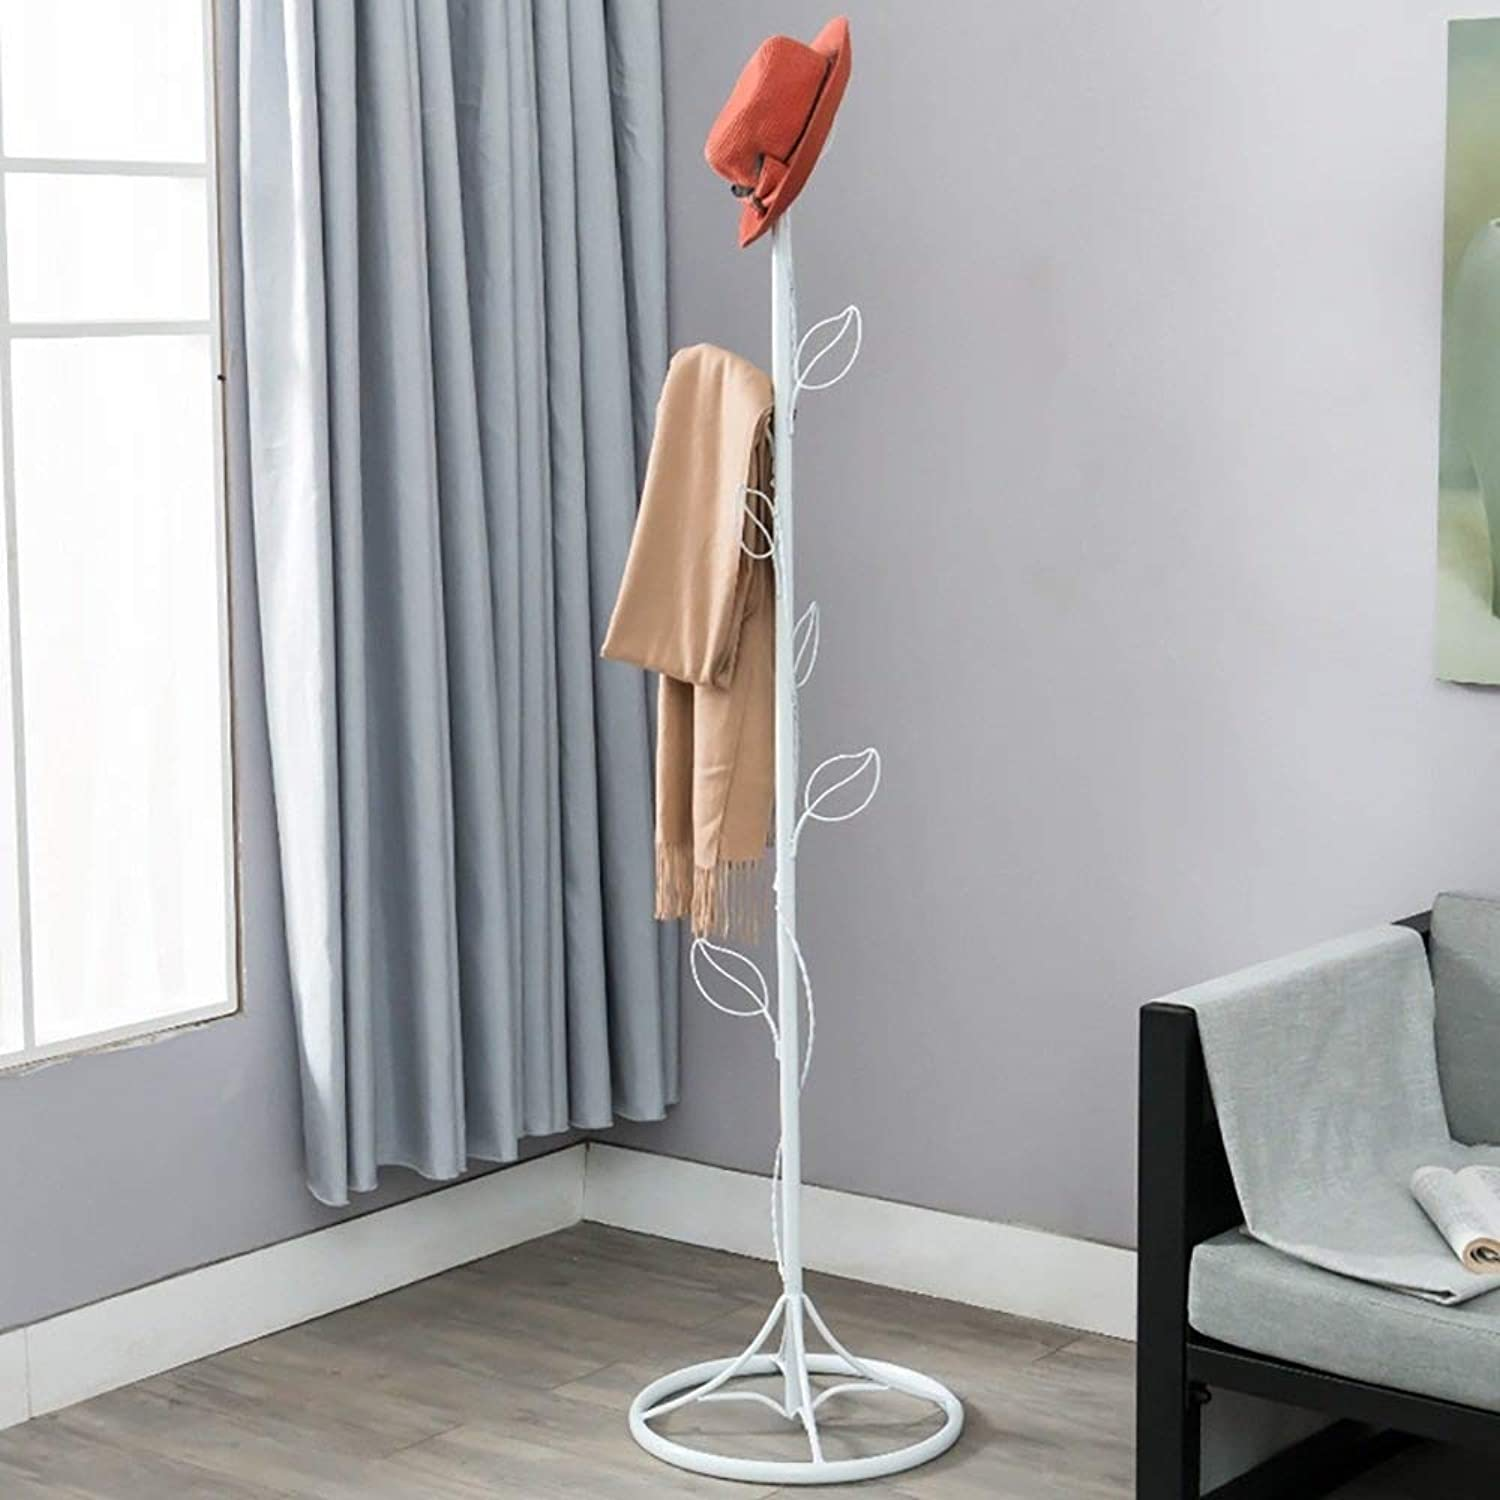 Coat Rack European Simple Creative Floorstanding Leaves Hangers Iron Clothes Rack Wall Hanger White Bedroom Haiming (color   White, Size   160cm)